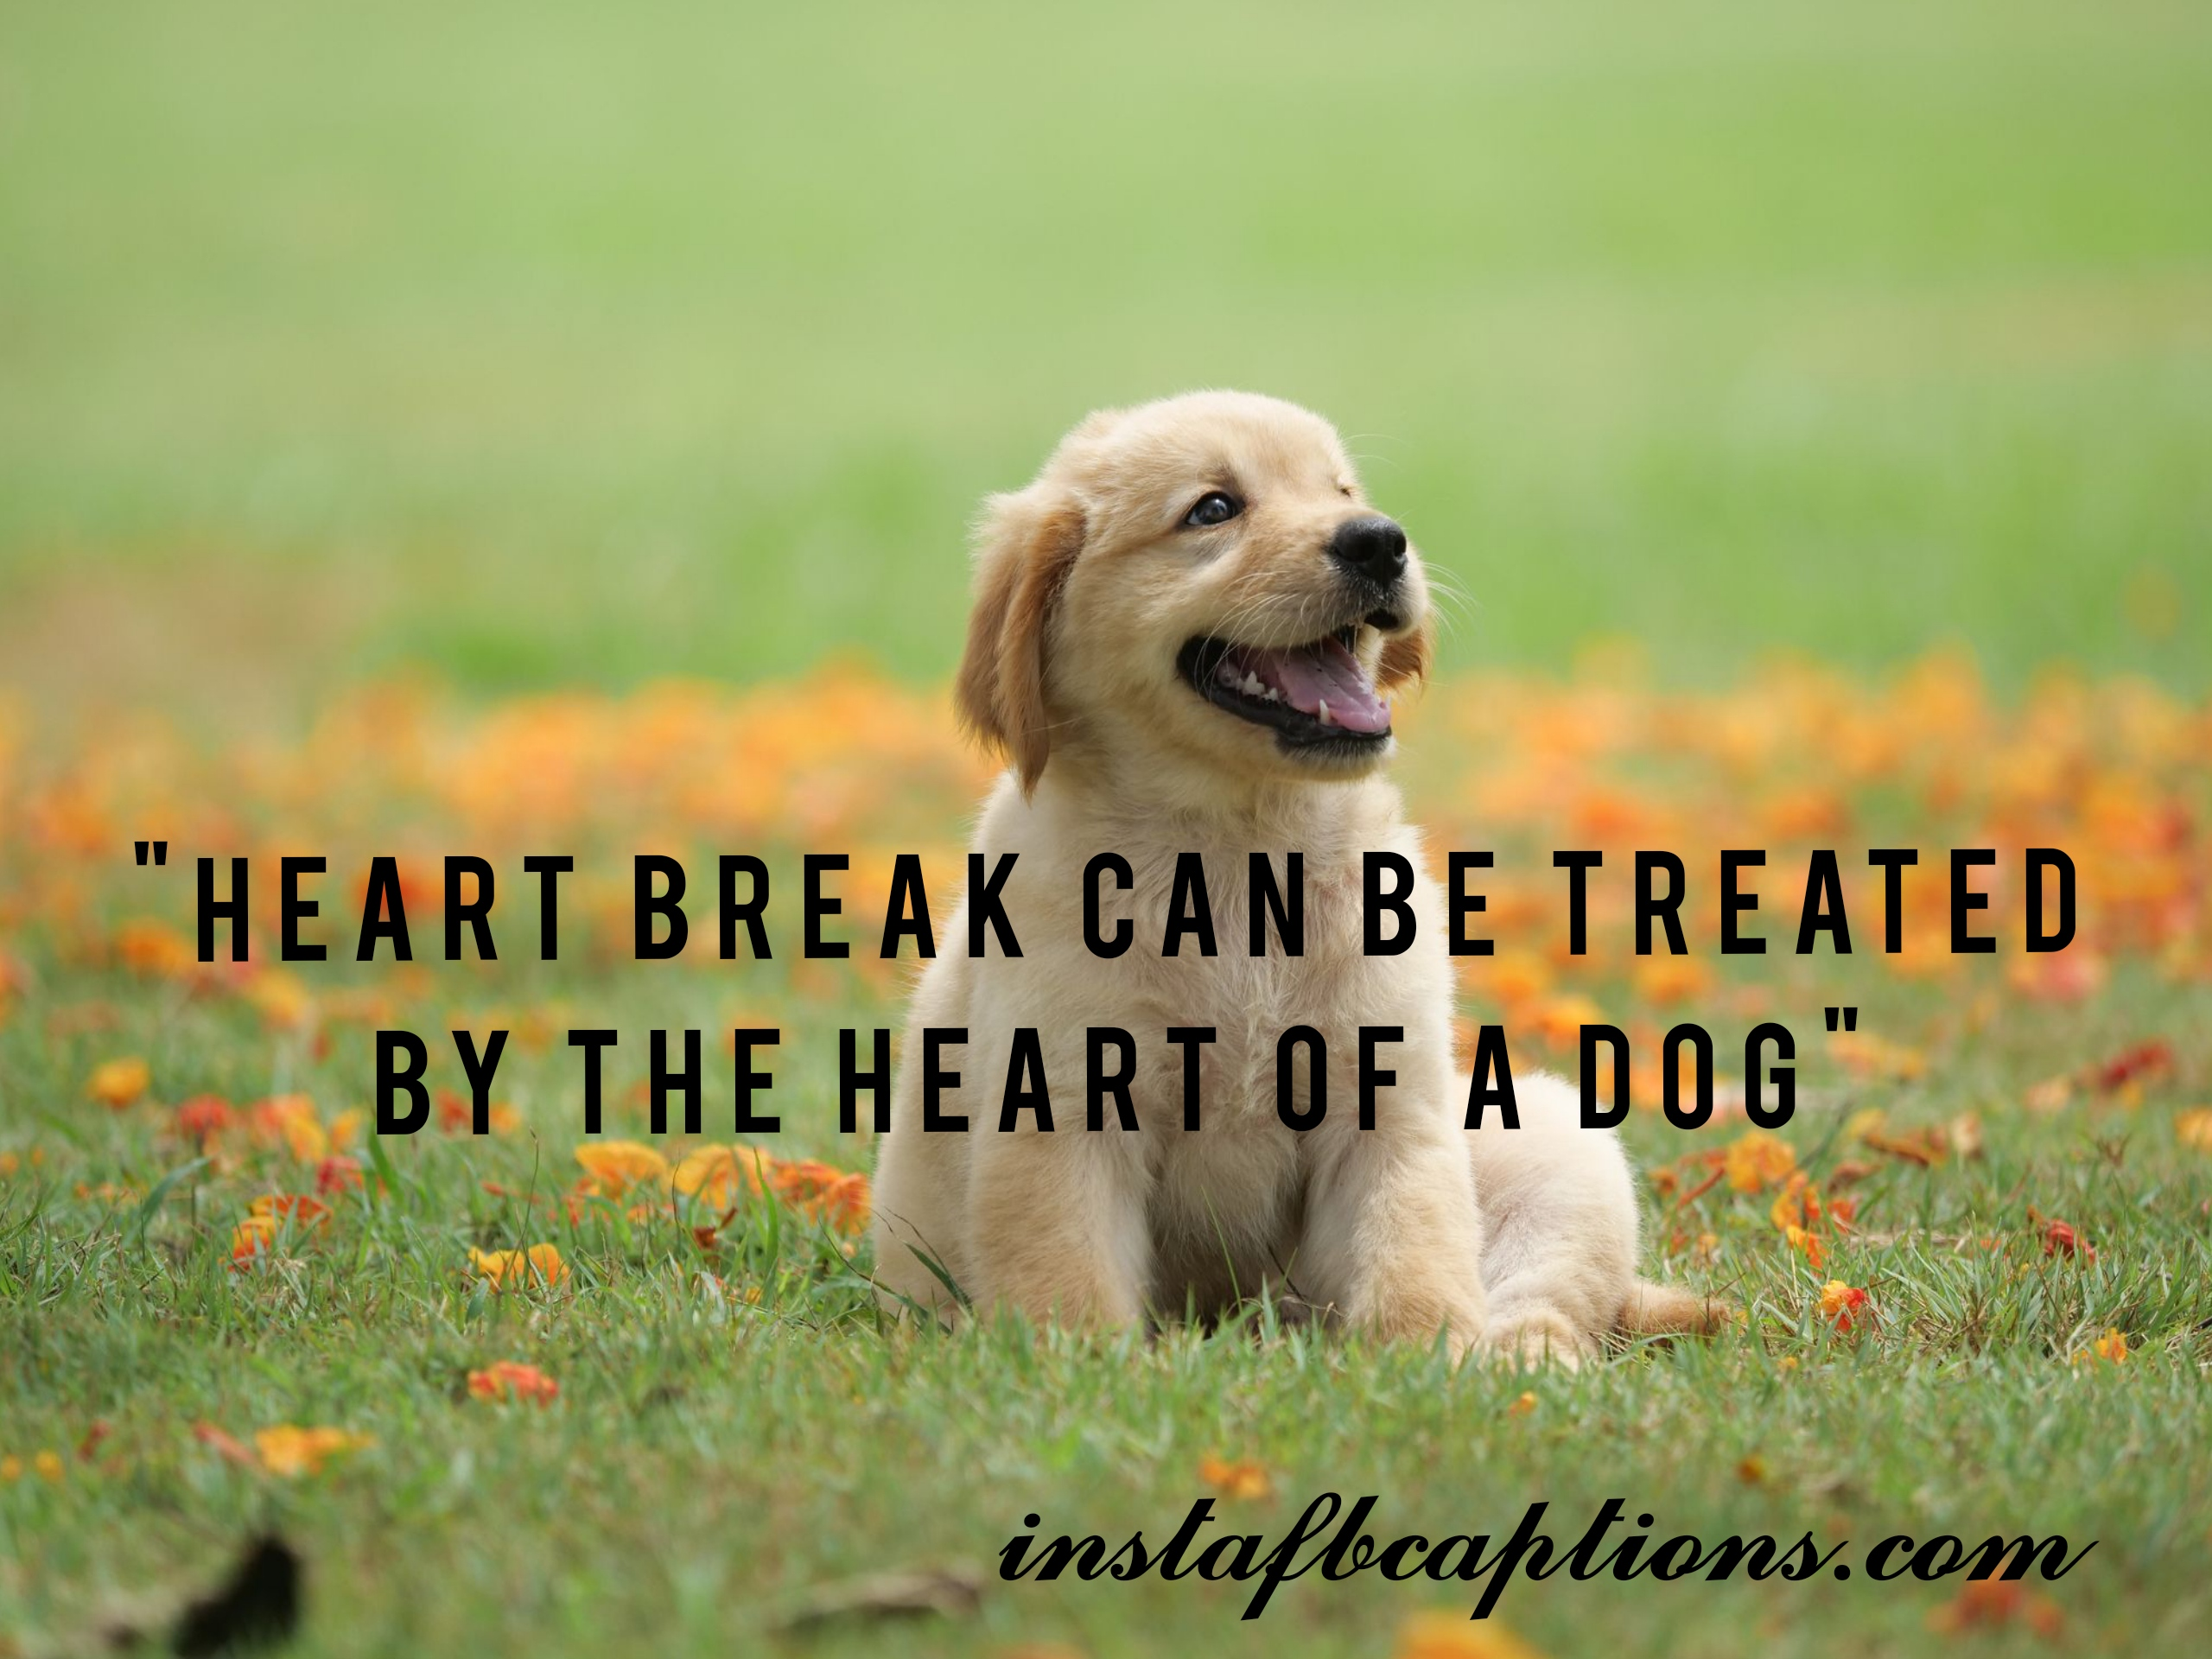 Love Dog Captions  - Love Dog Captions - 150+ DOGS & PUPPY Instagram Captions for Dog Lovers 2021